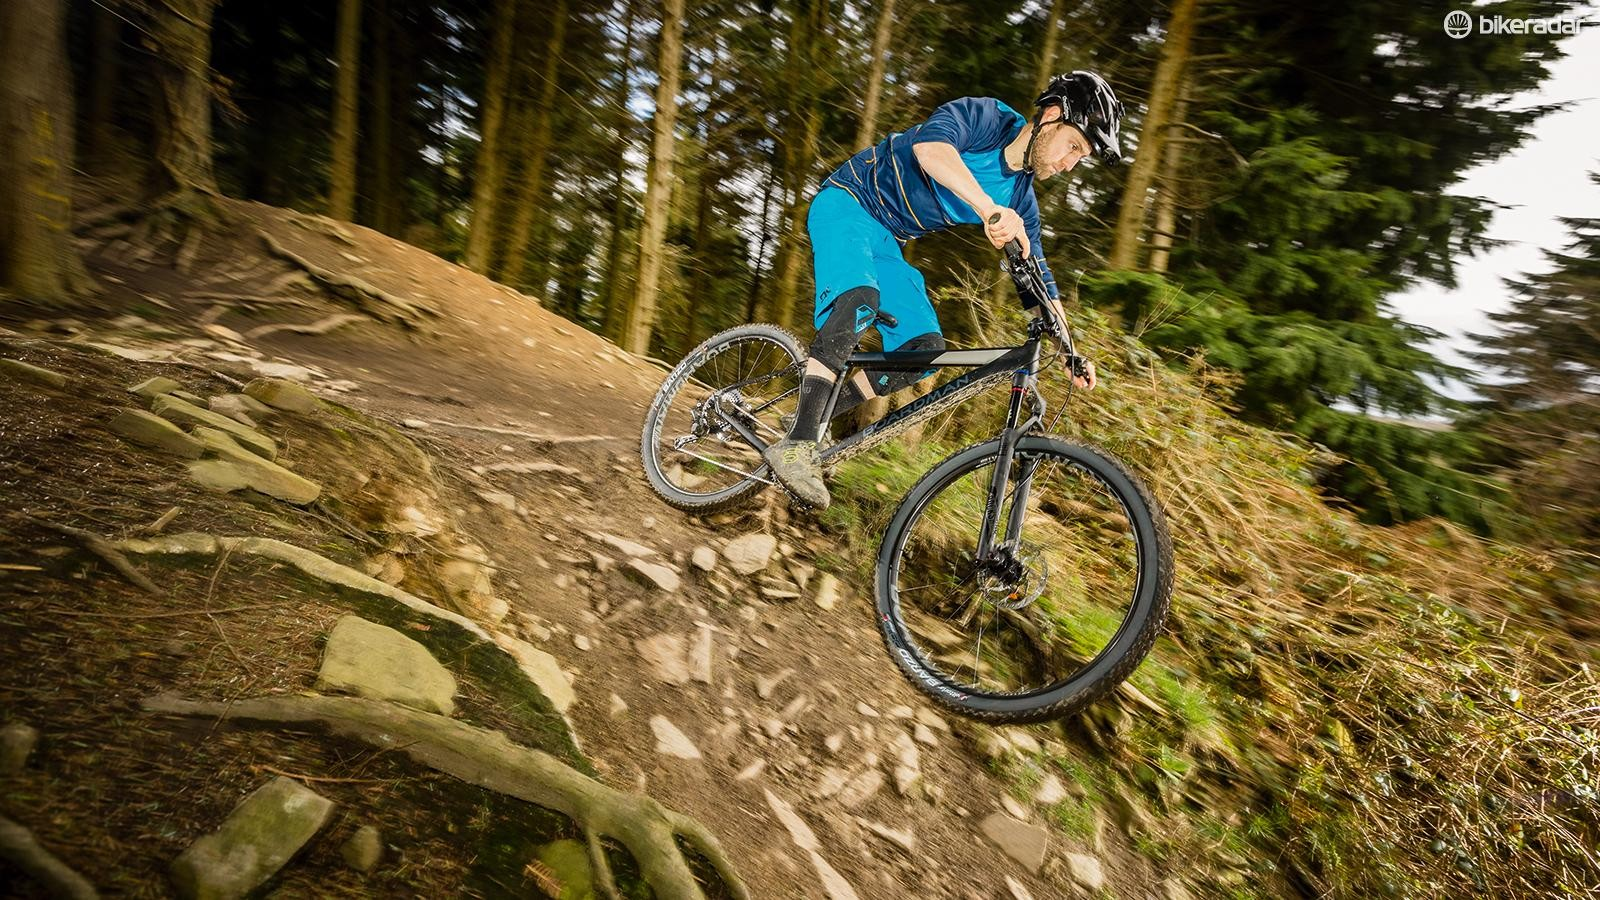 RockShox's excellent Reba RL fork brings easy set-up sag marks, 'Fast Black' stanchion coating, Boost bolt-through accuracy and its latest recessed-air-cap detailing